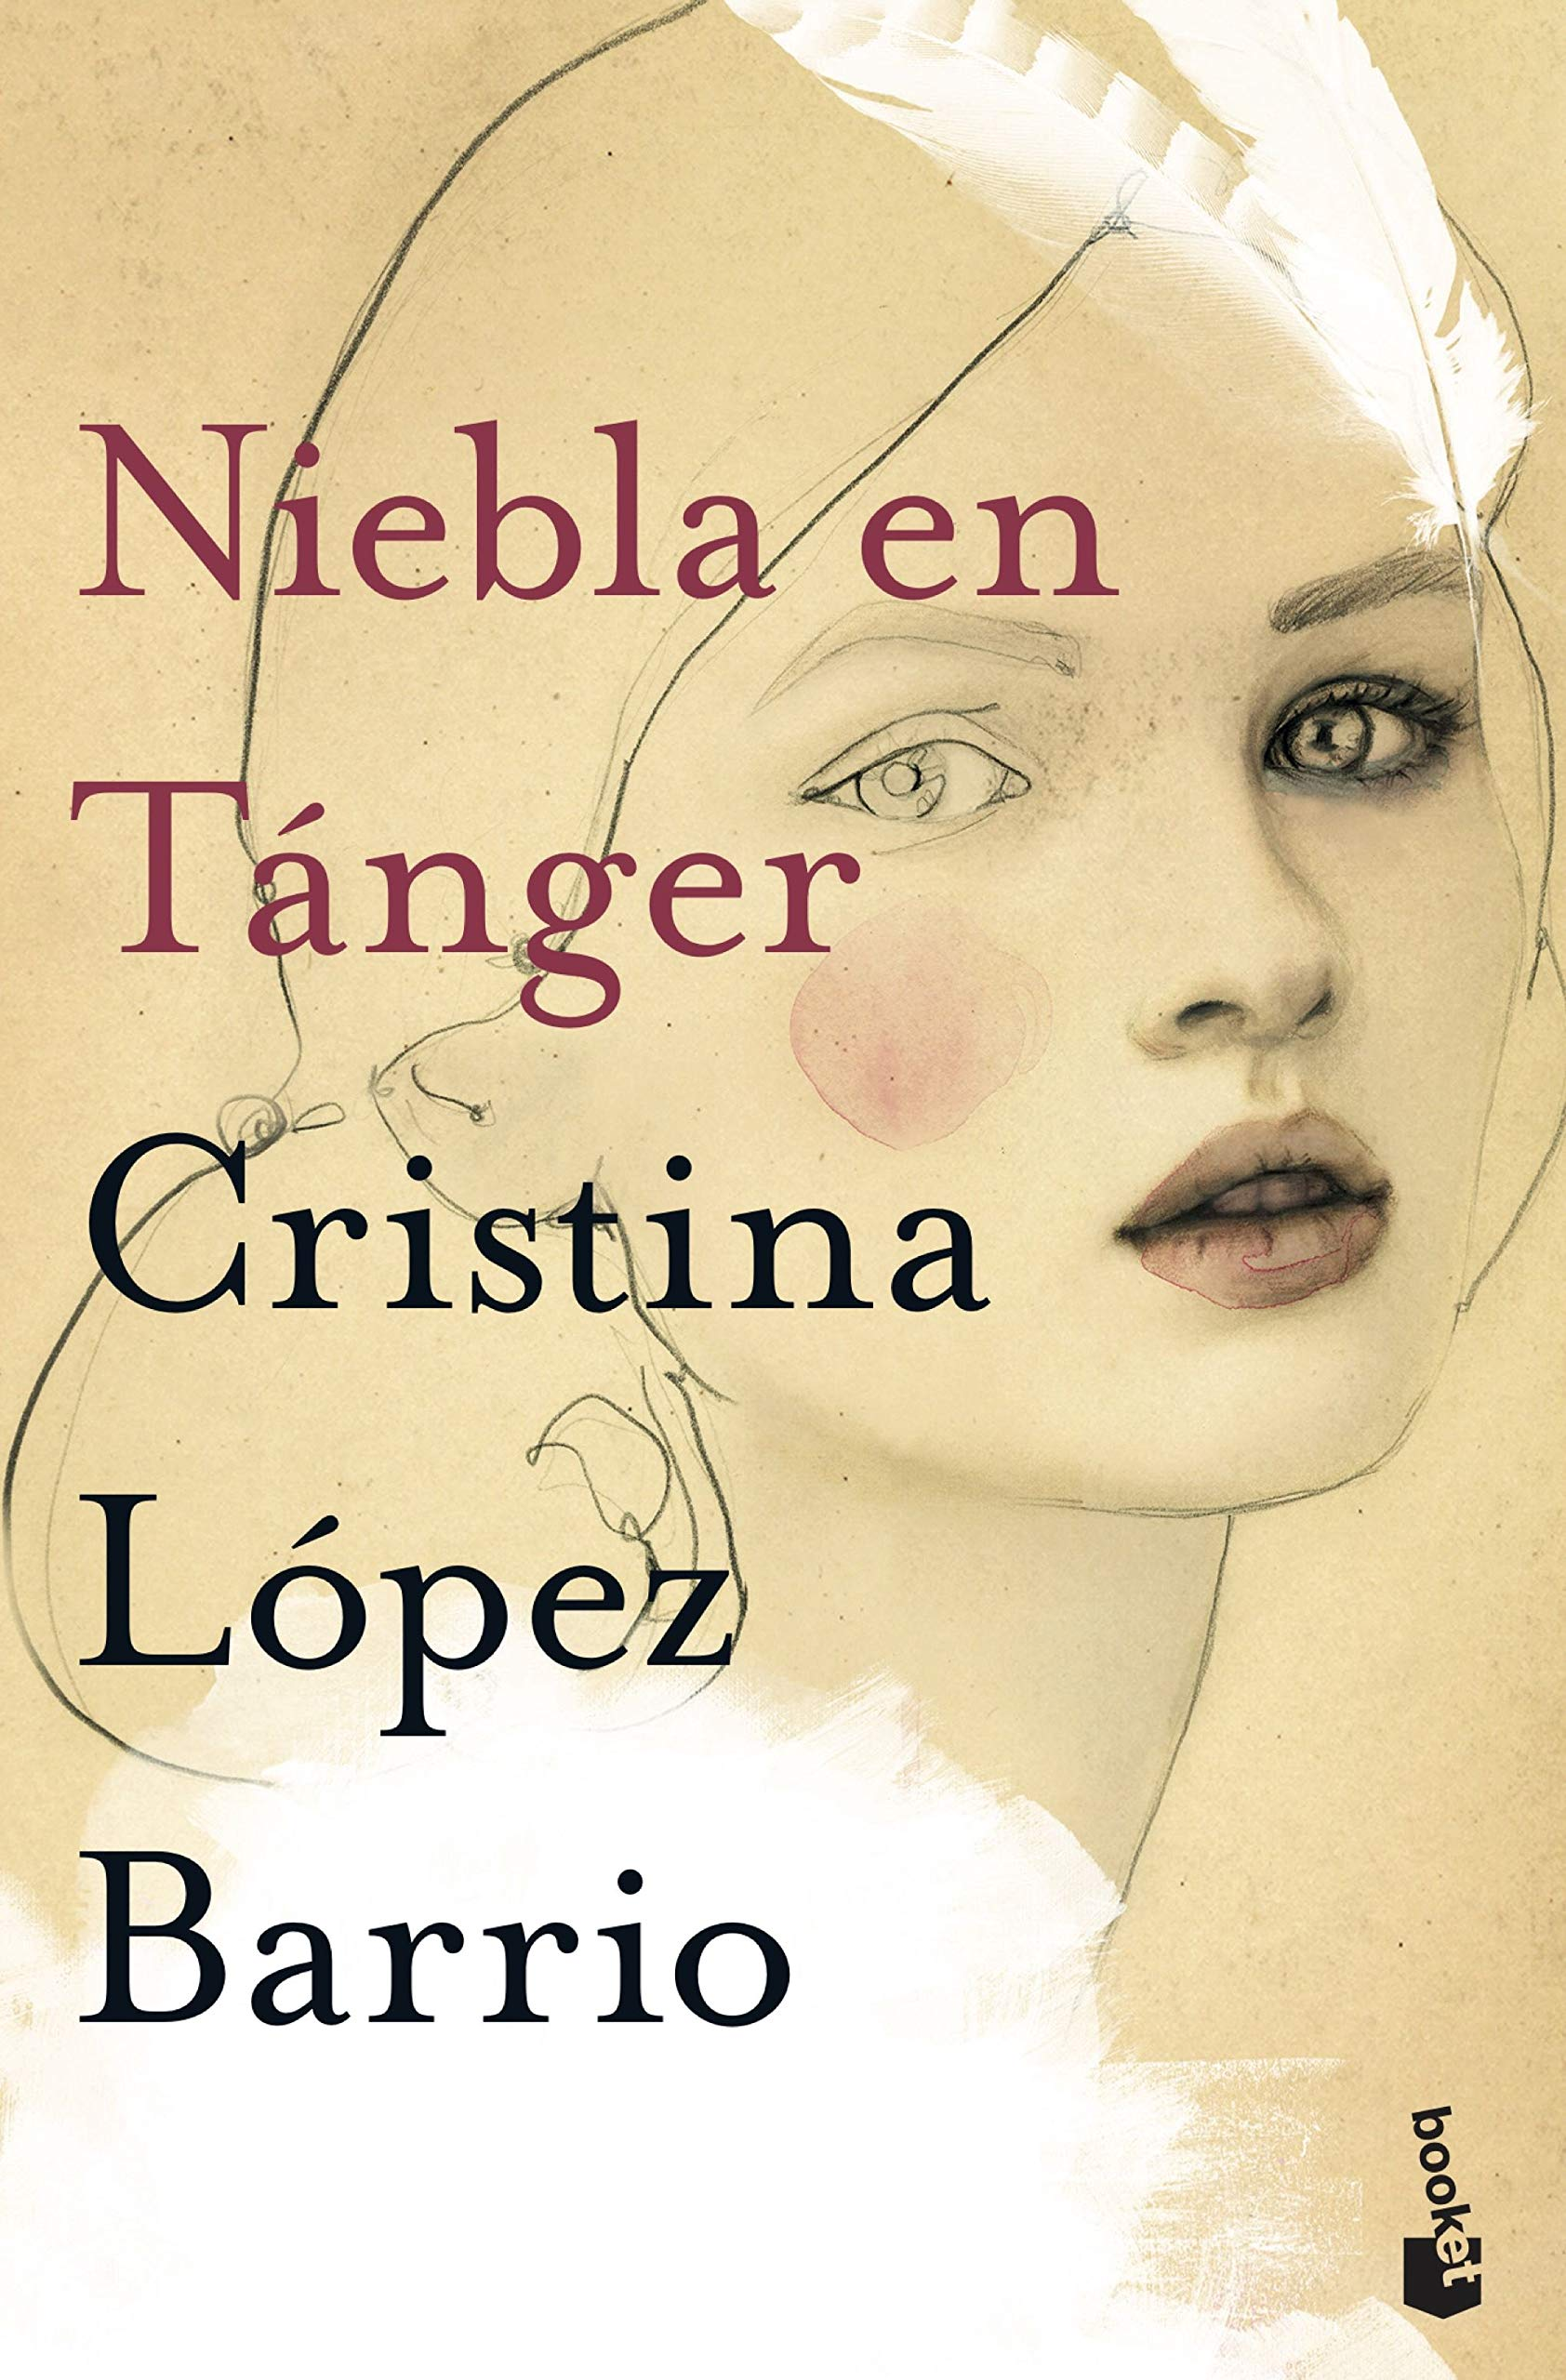 Niebla En Tanger Amazon Co Uk Lopez Barrio Cristina 9788408216506 Books